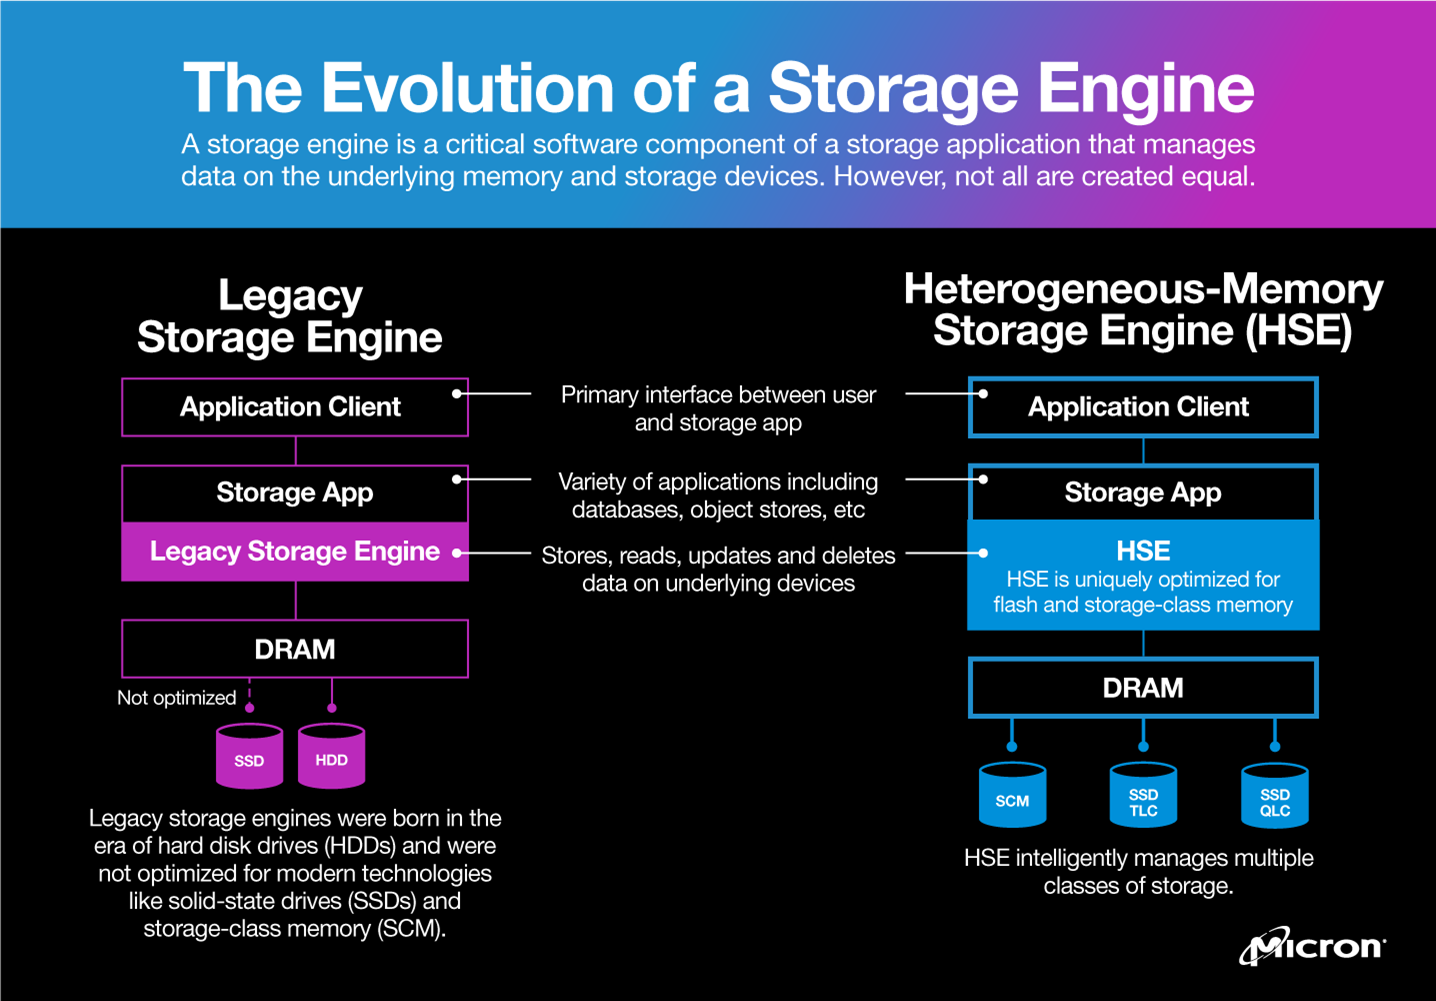 Infographic image comparing Heterogeneous-Memory Storage Engine (HSE) to a legacy storage engine